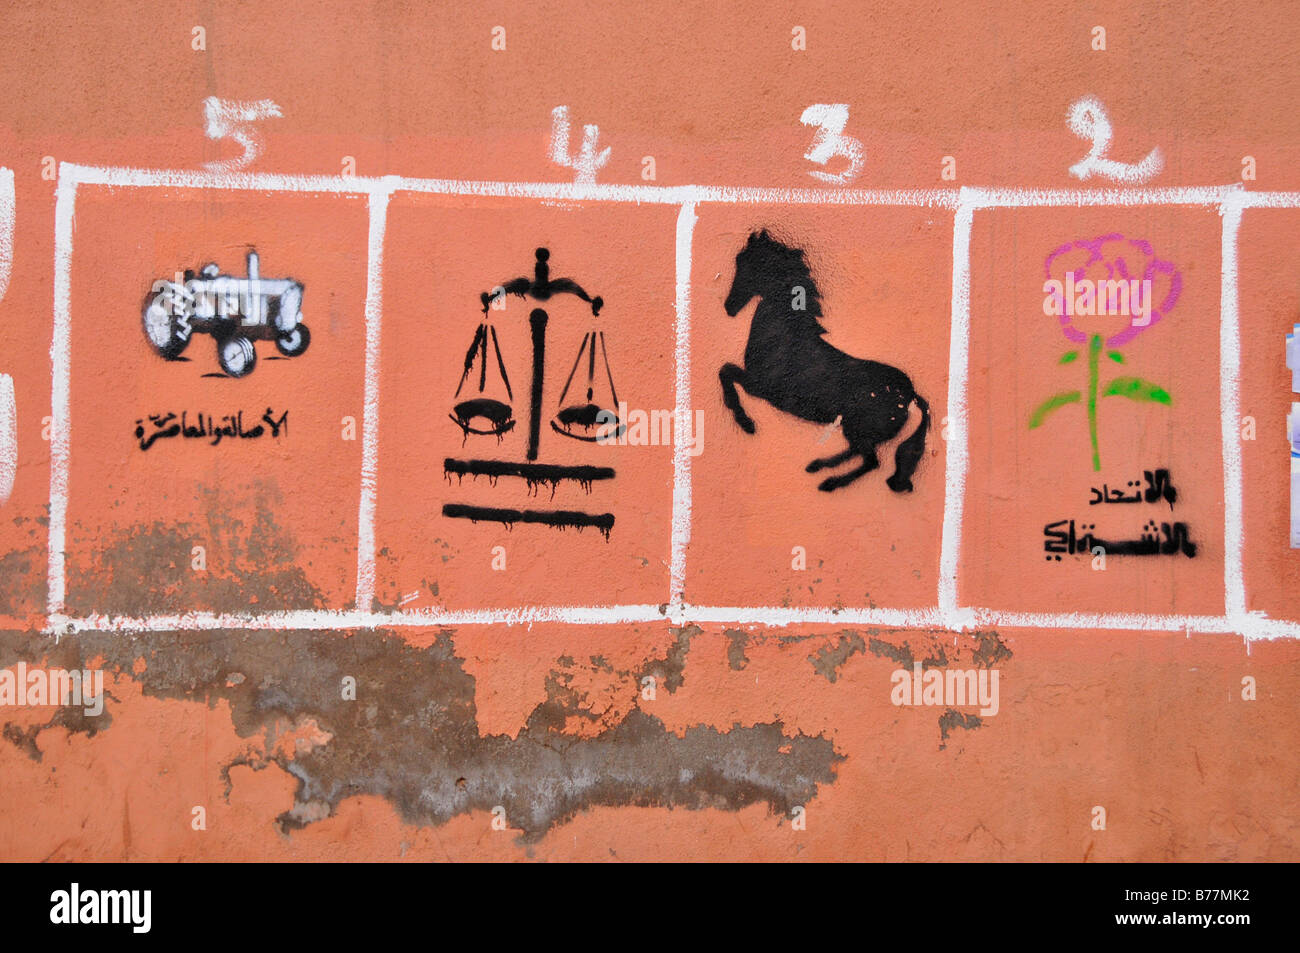 Moroccan vote advertising with the symbols of the various parties on a wall, Marrekech, Morocco, Africa - Stock Image